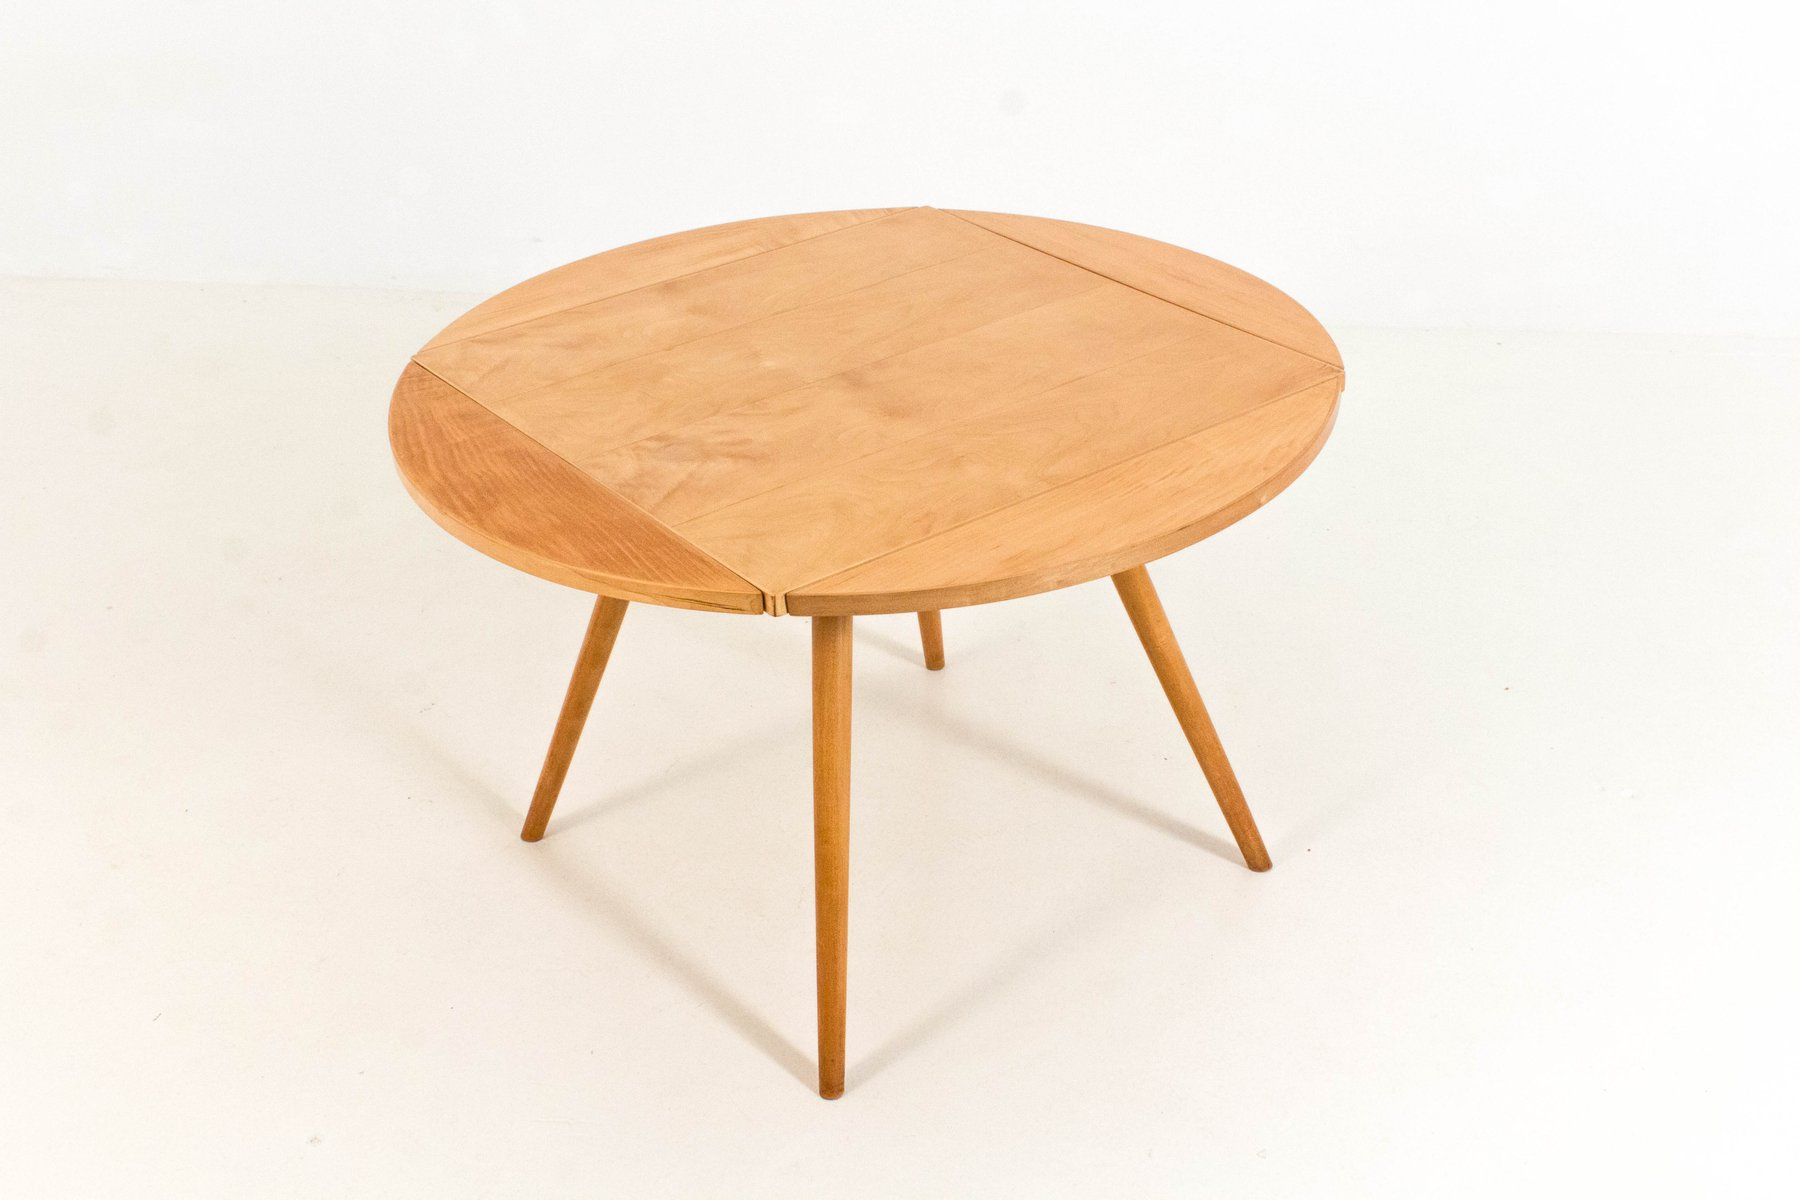 Vintage Drop Leaf Table with 3 Chairs by Cees Braakman for Pastoe